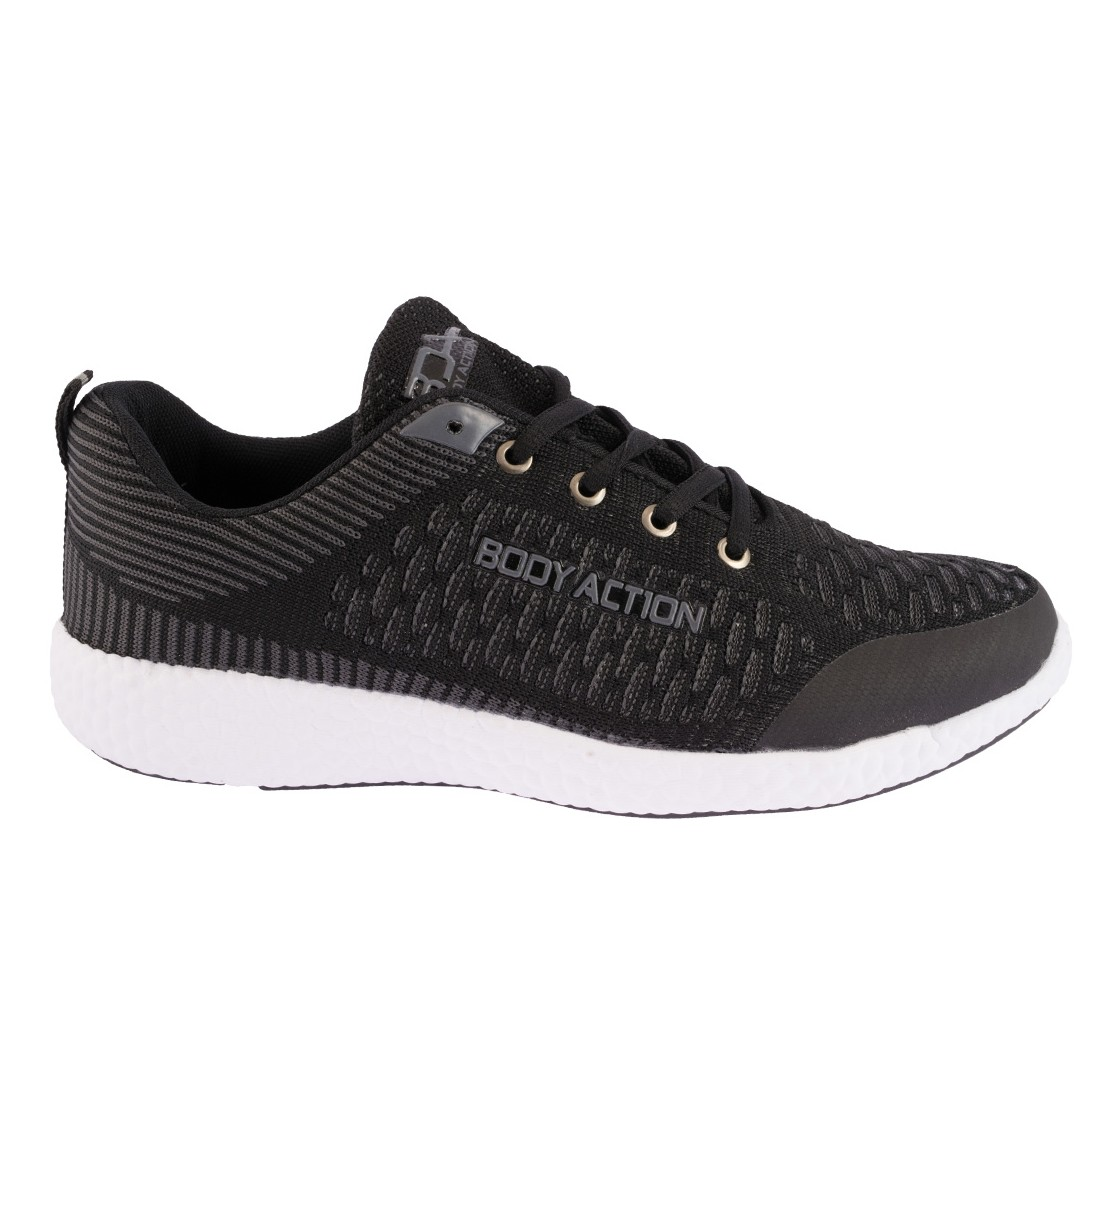 Body Action Ανδρικό Παπούτσι Running Men Sport Shoes 093707